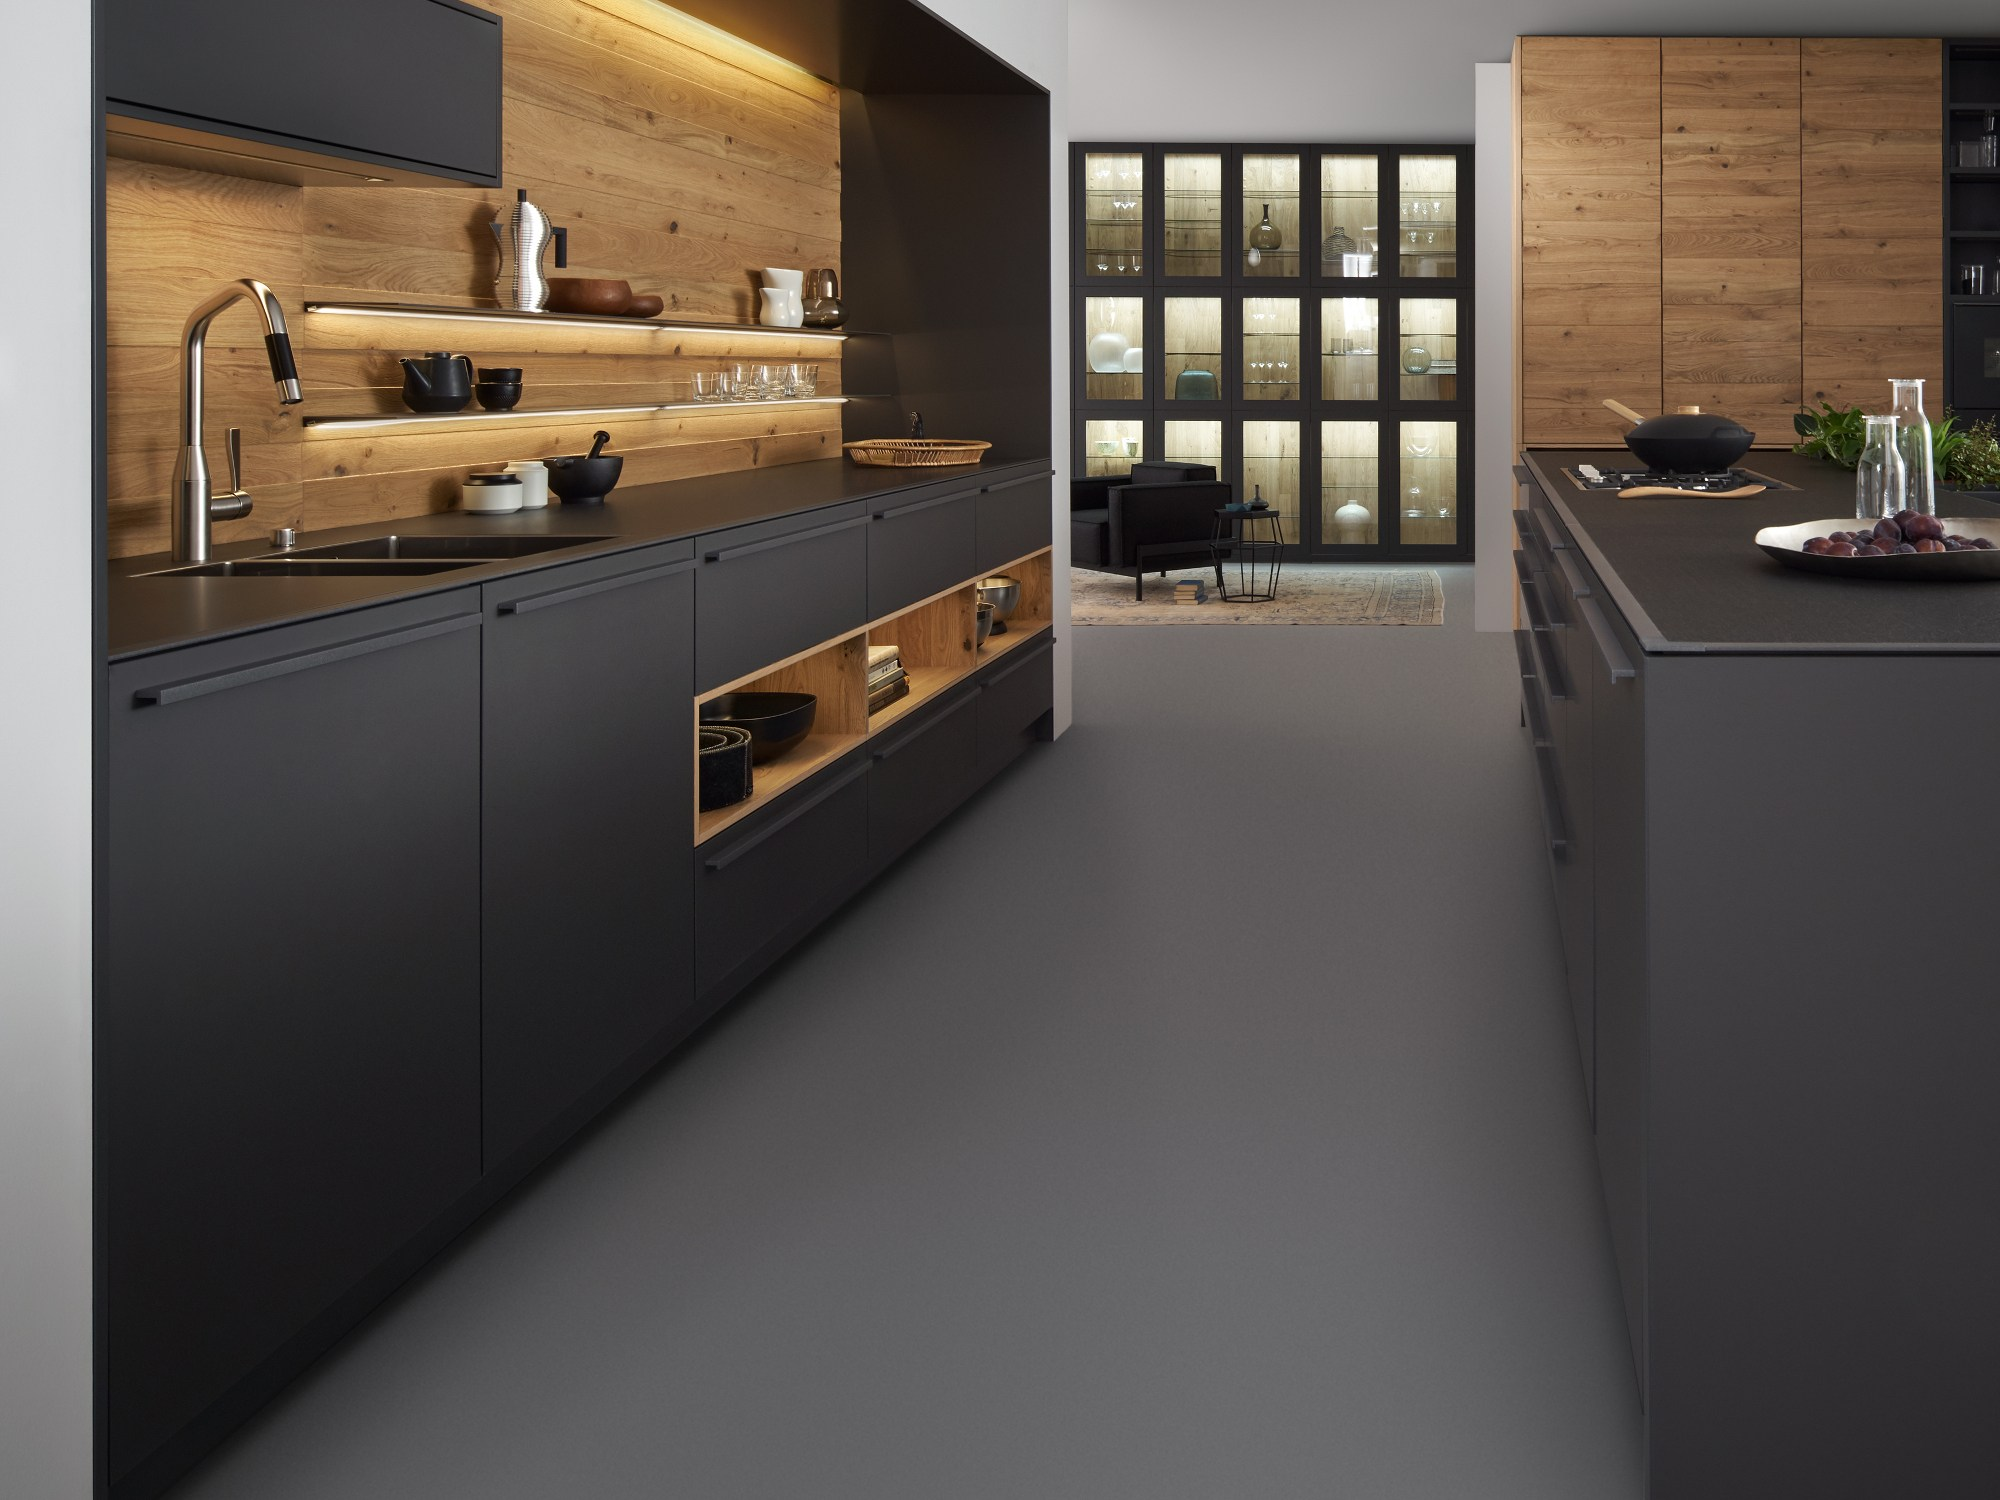 cucina in legno massello con isola bondi valais by leicht k chen. Black Bedroom Furniture Sets. Home Design Ideas